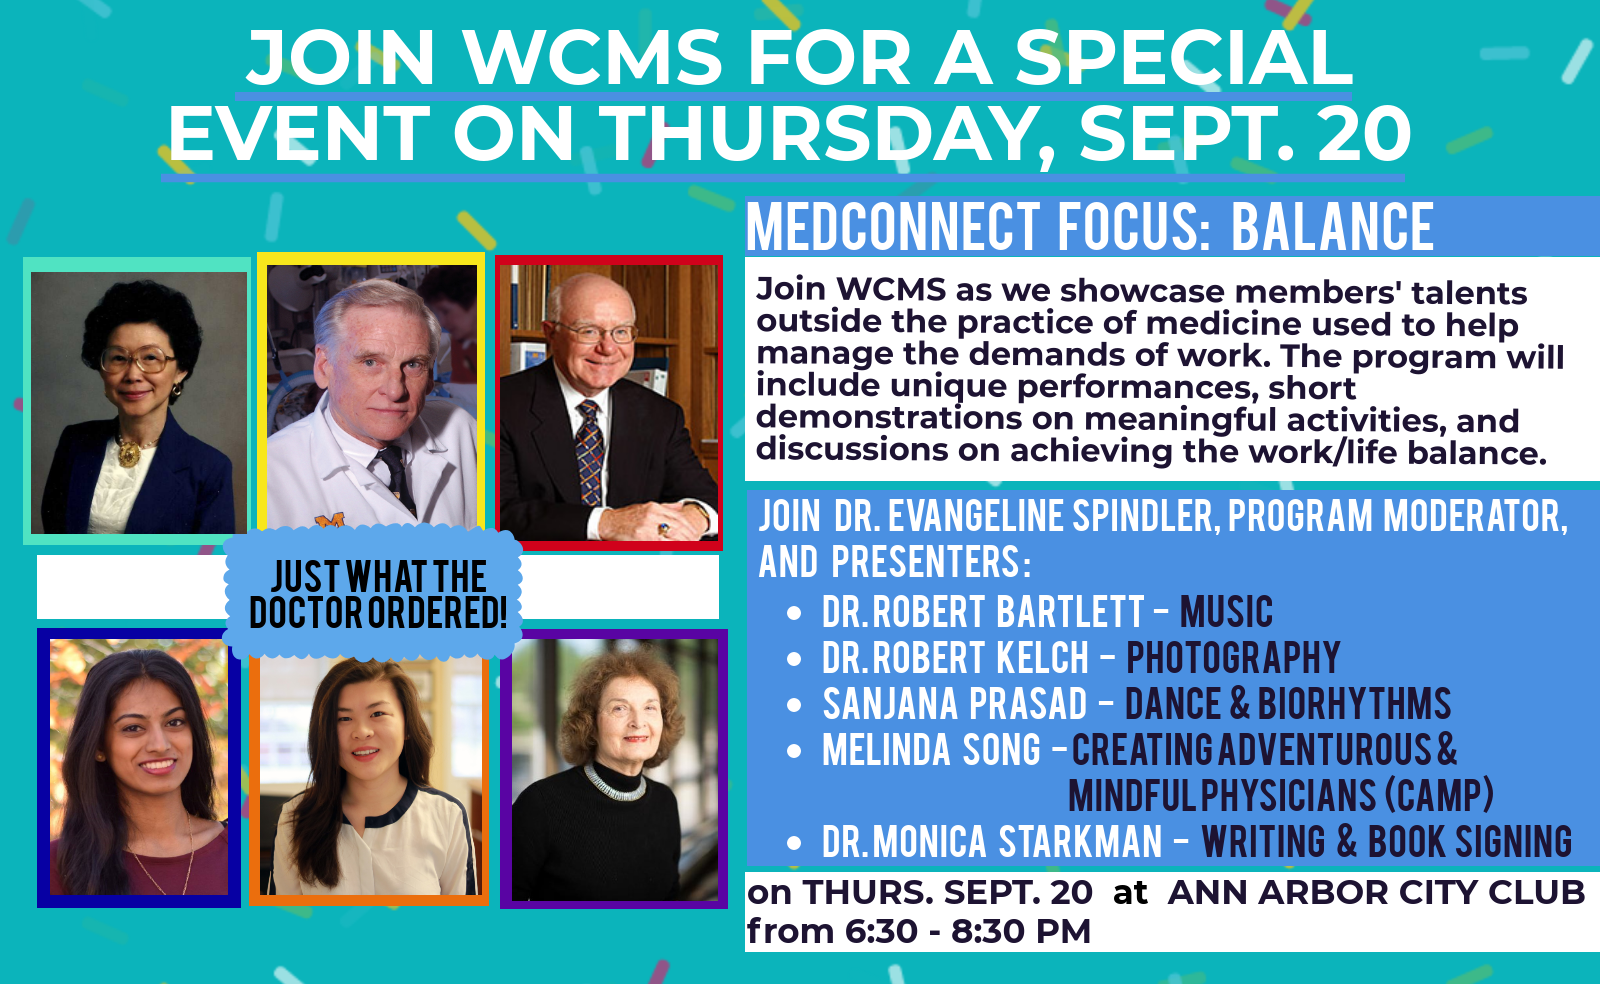 Balance - WCMS Event @ Ann Arbor City Club | Ann Arbor | Michigan | United States